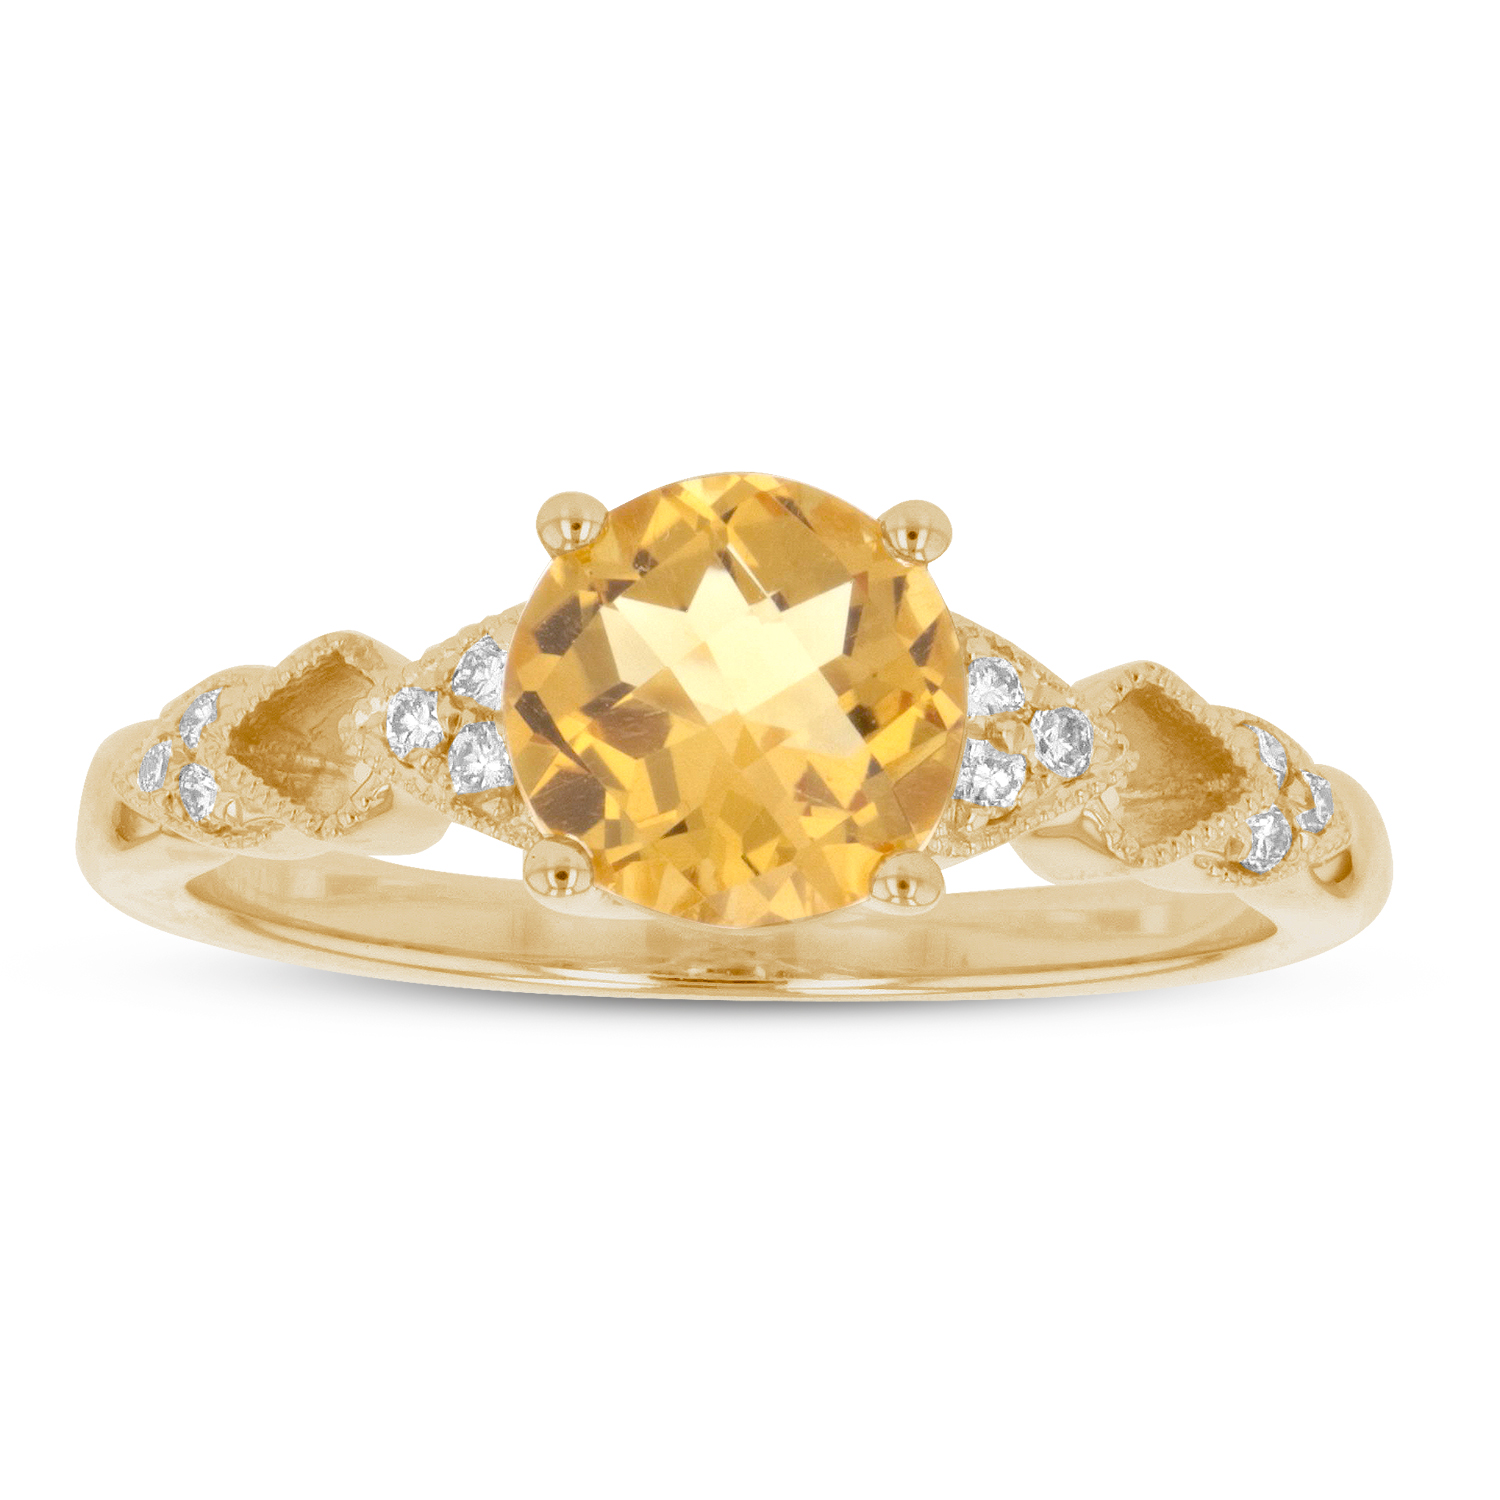 View 1.27ctw Diamond and Citrine Ring in 14k Yellow Gold